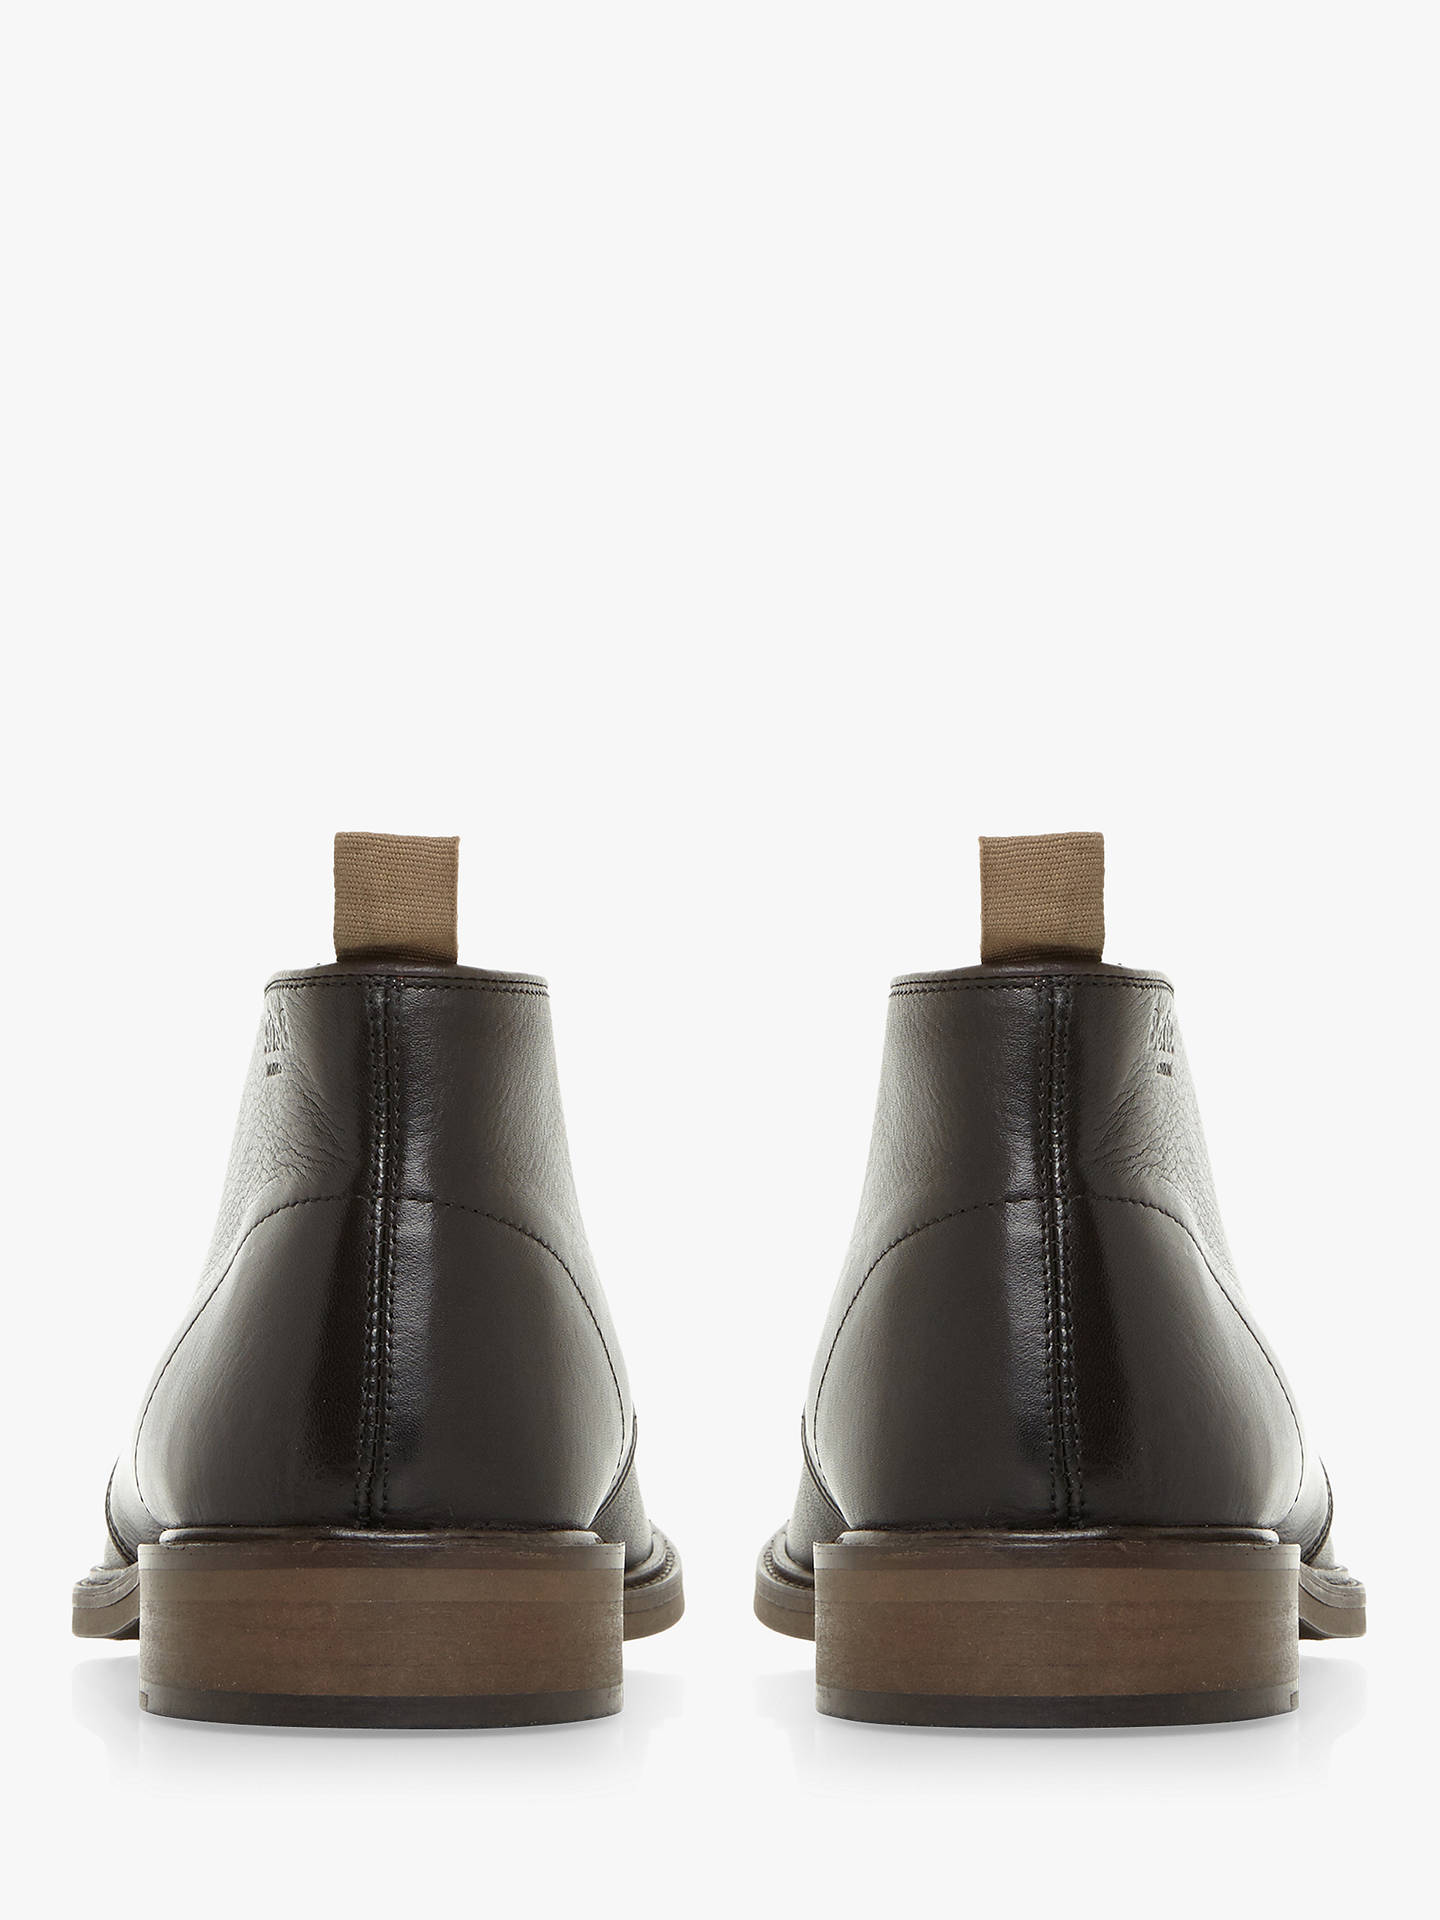 BuyBertie Mogul Leather Chukka Boots, Black, 6 Online at johnlewis.com